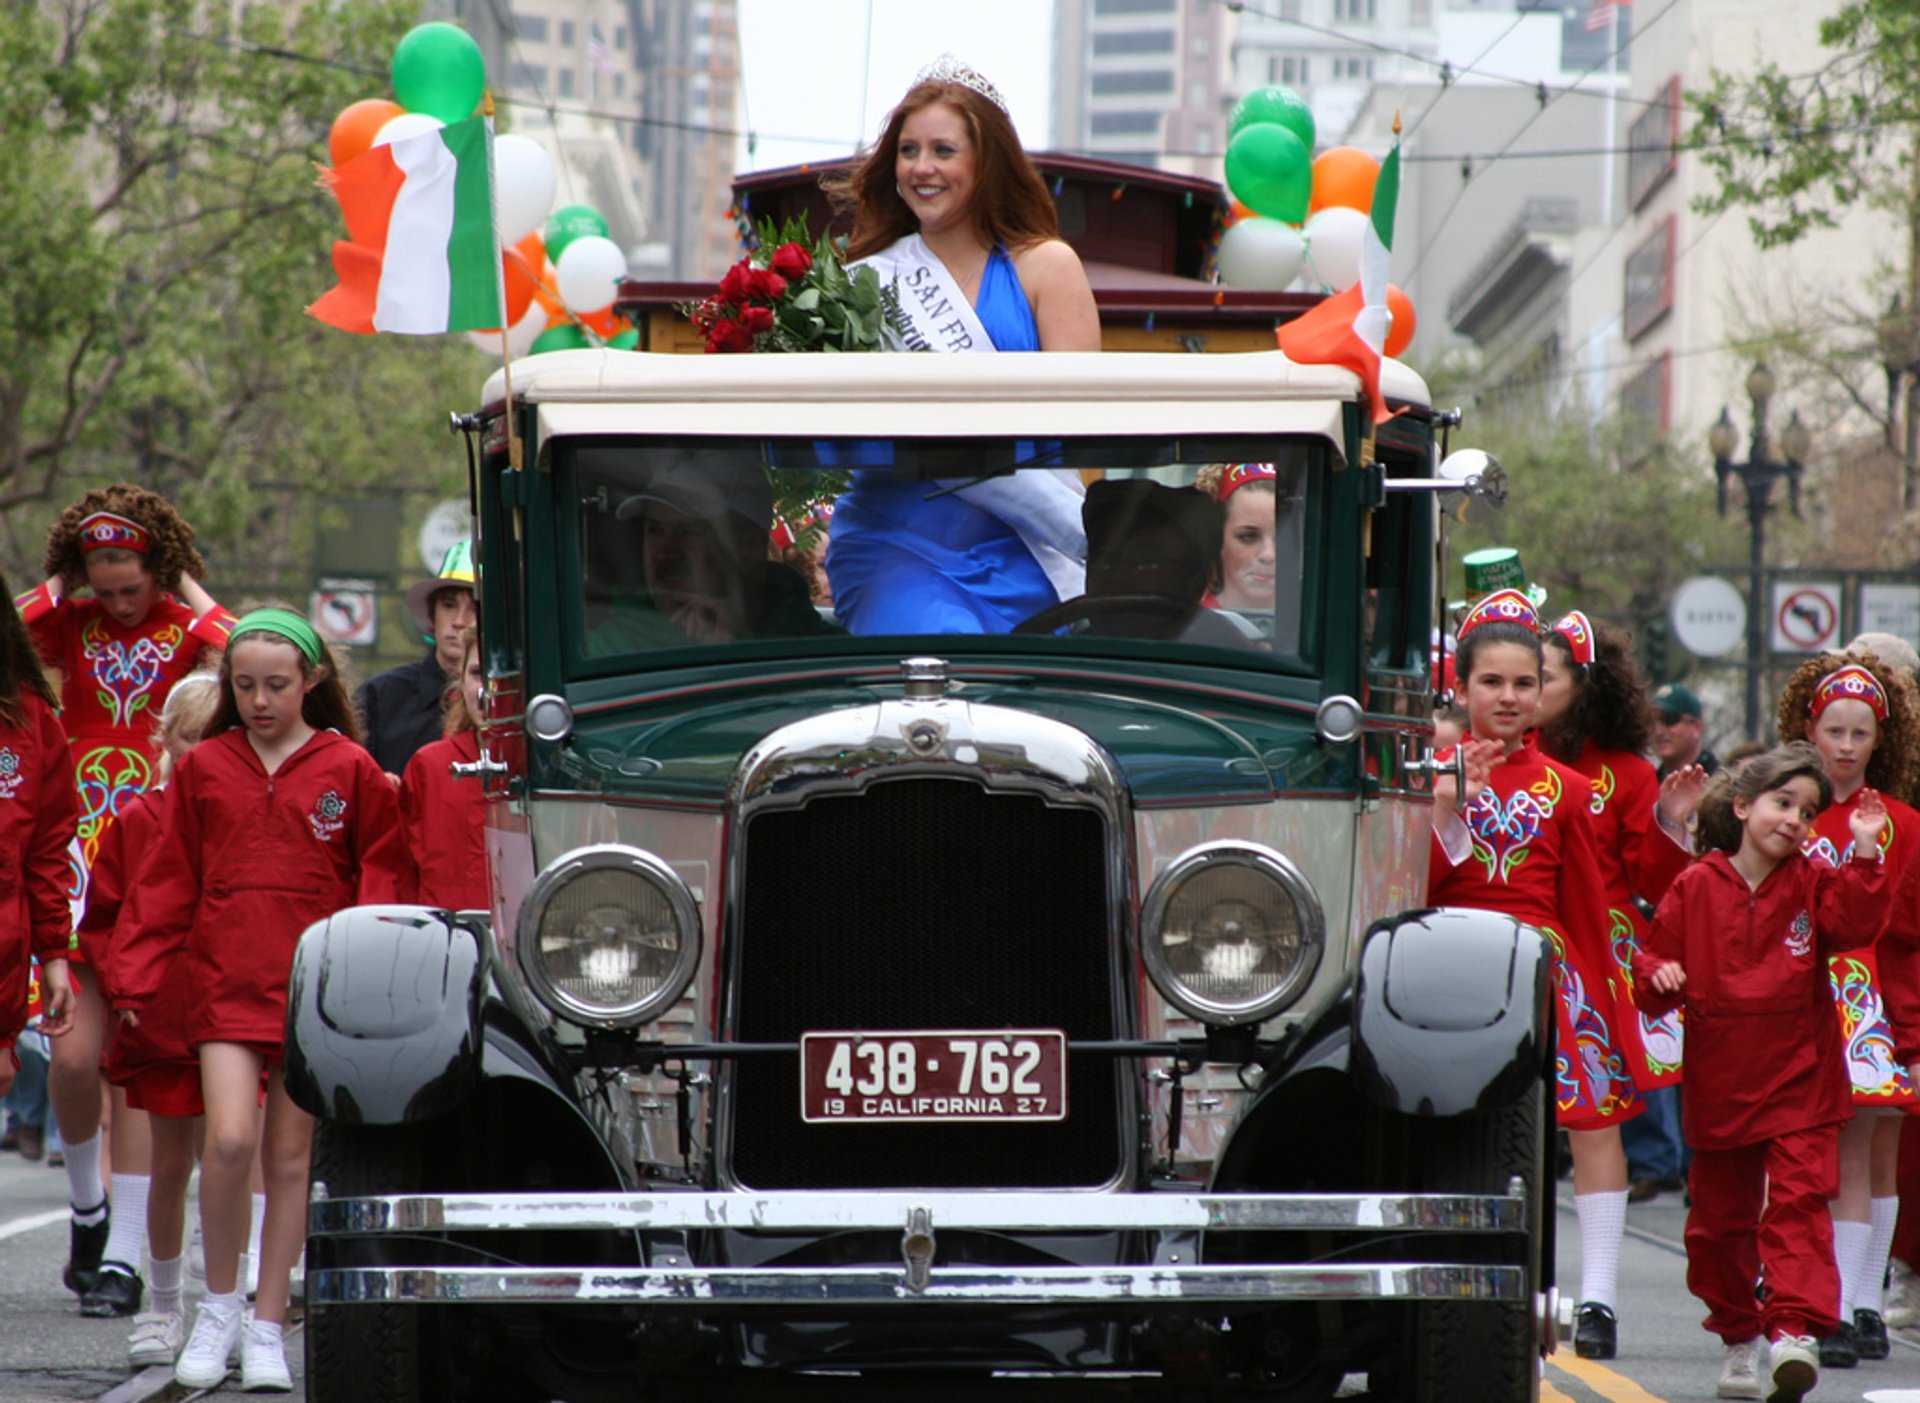 St. Patrick's Day Parade in San Francisco - Best Season 2020